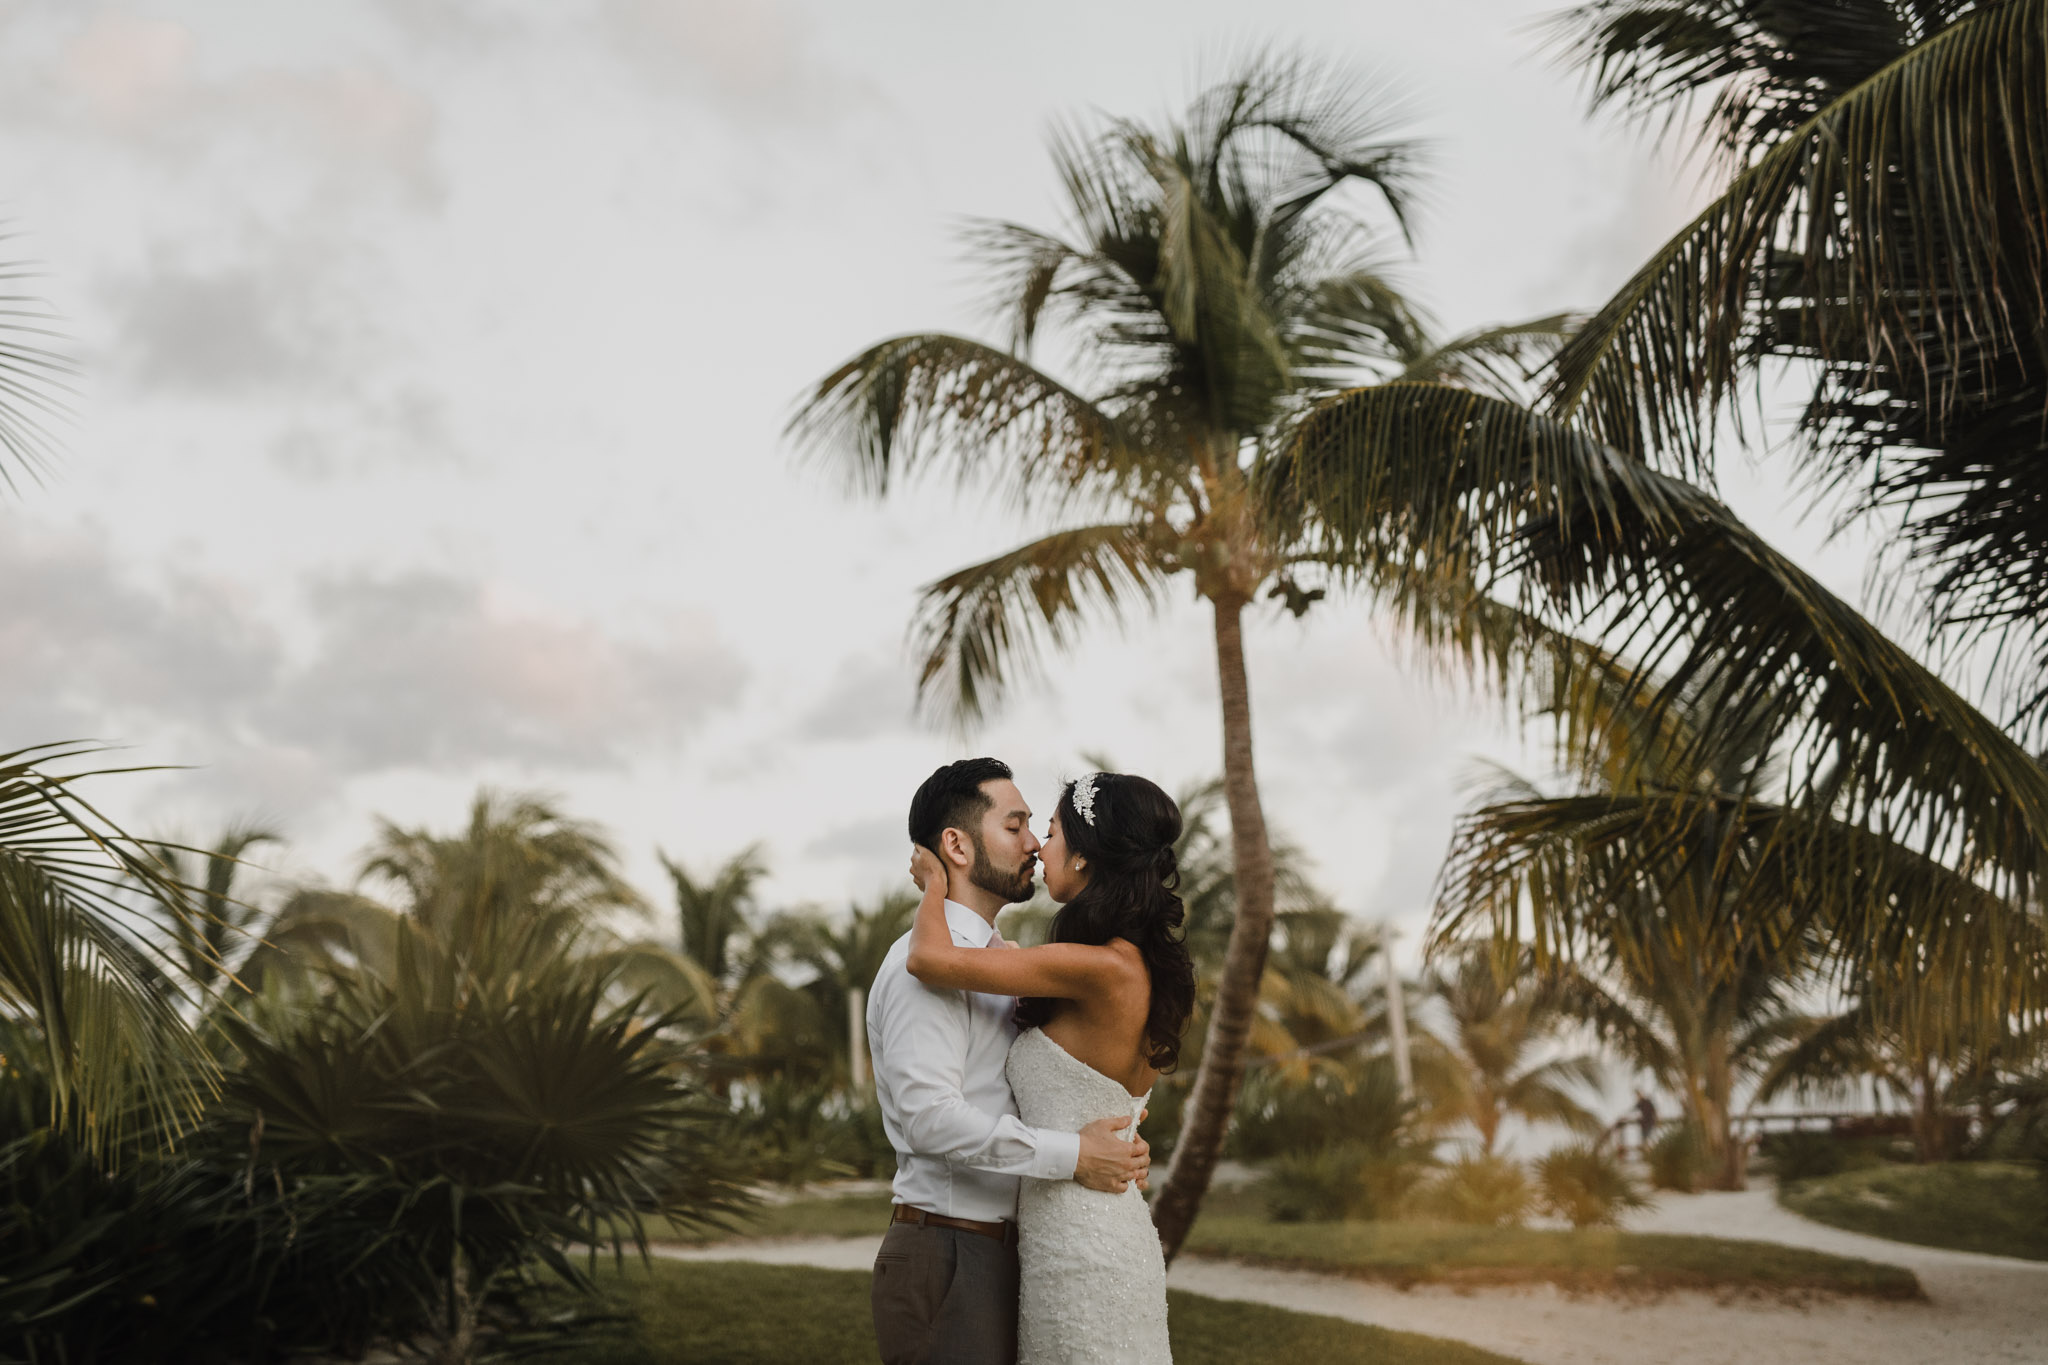 Cancun Mexico Wedding - sunset embrace